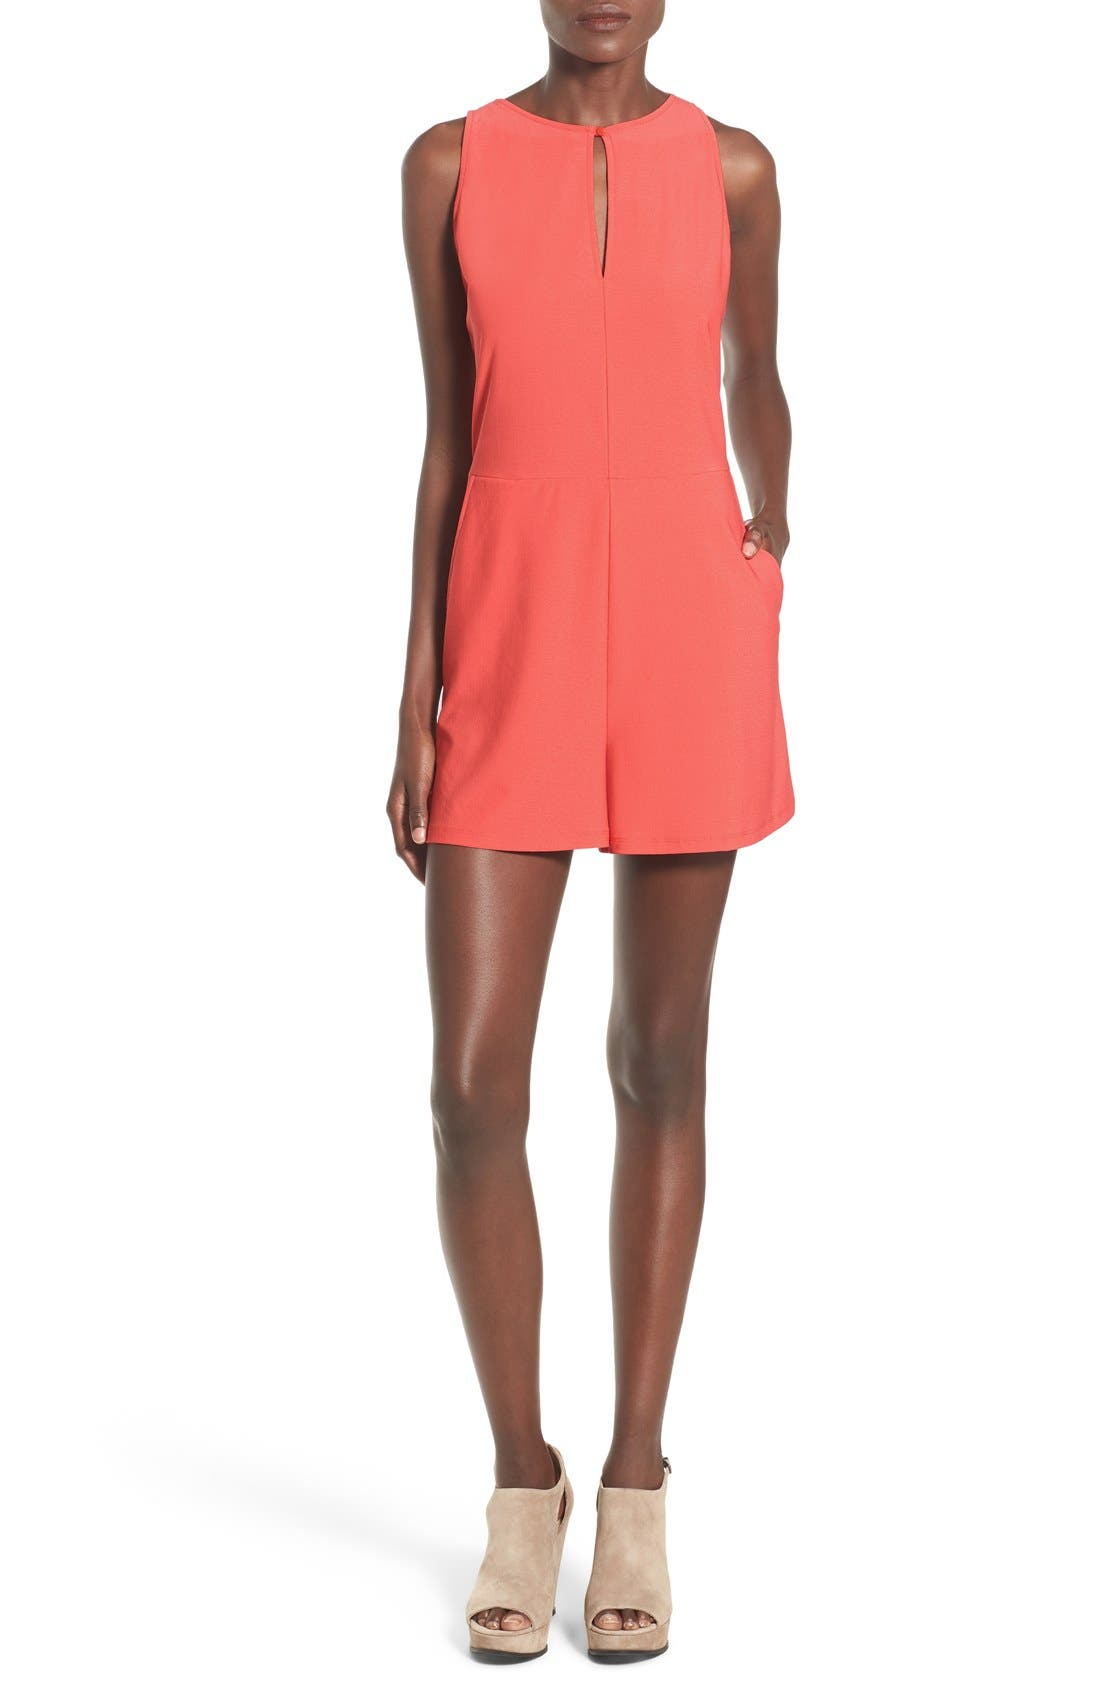 LEITH, Lace-Up Back Romper, Main thumbnail 1, color, 958